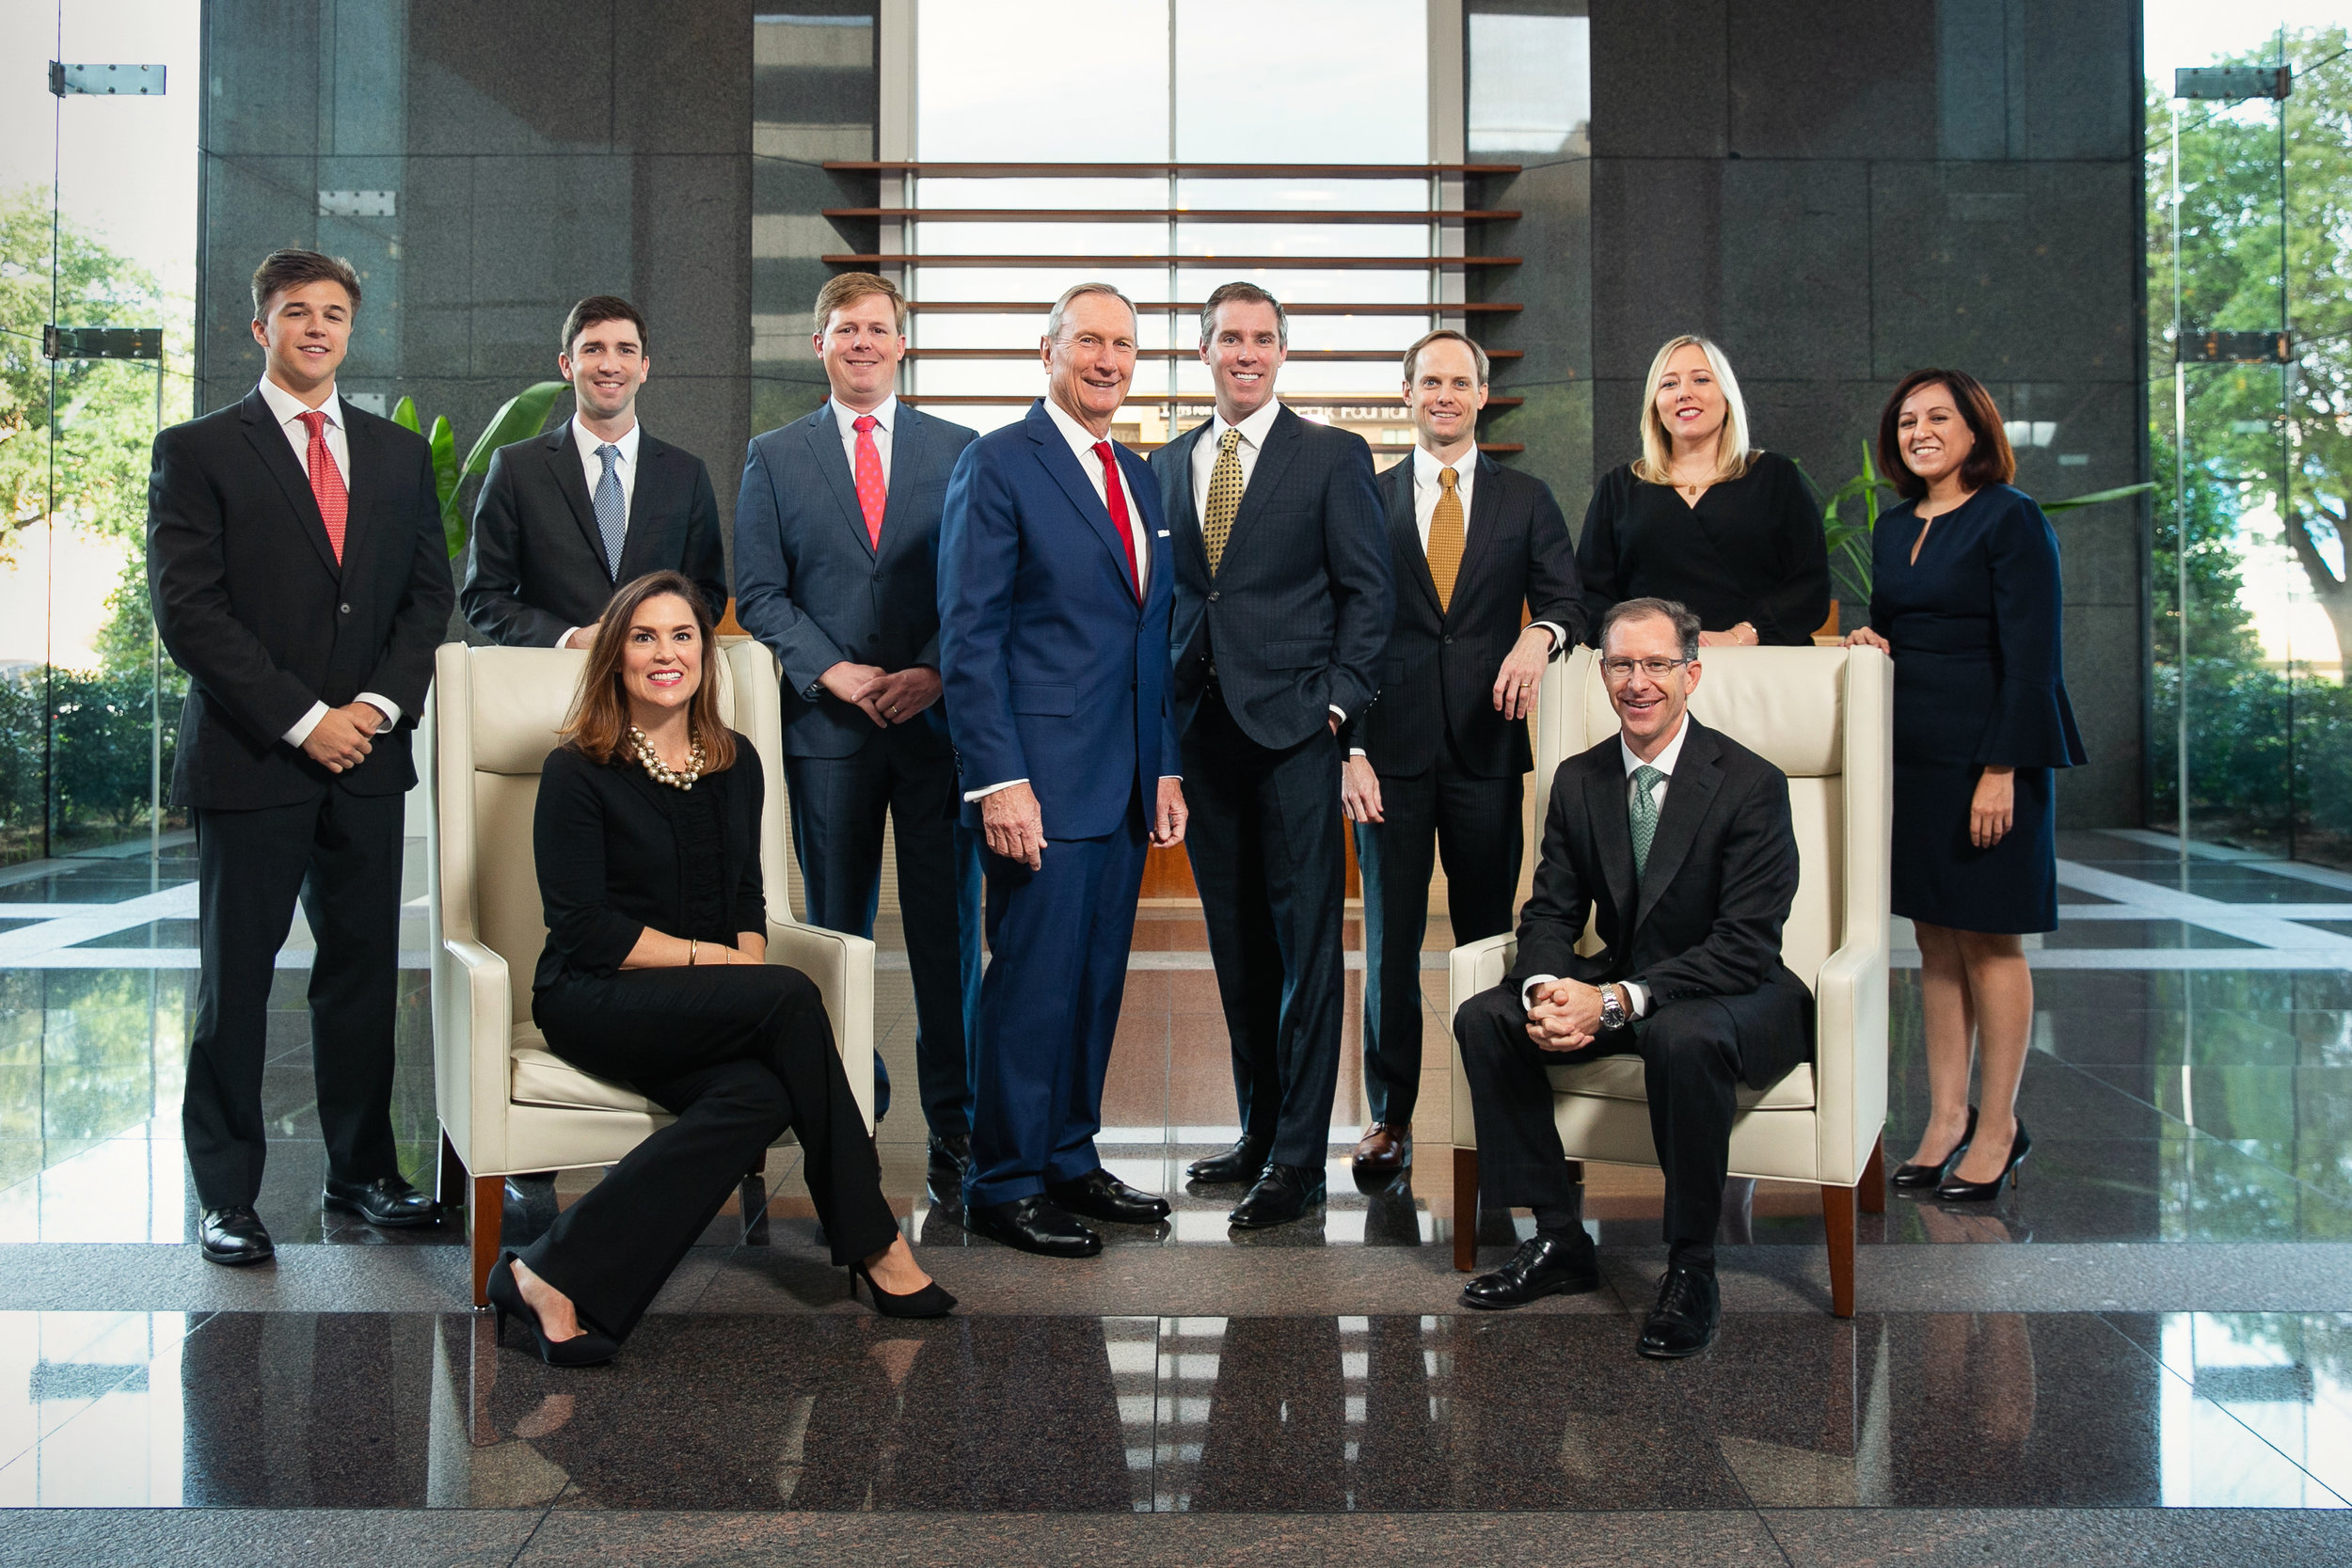 Probity Advisors, Inc. staff. (Photo provided by Probity Advisors, Inc.)